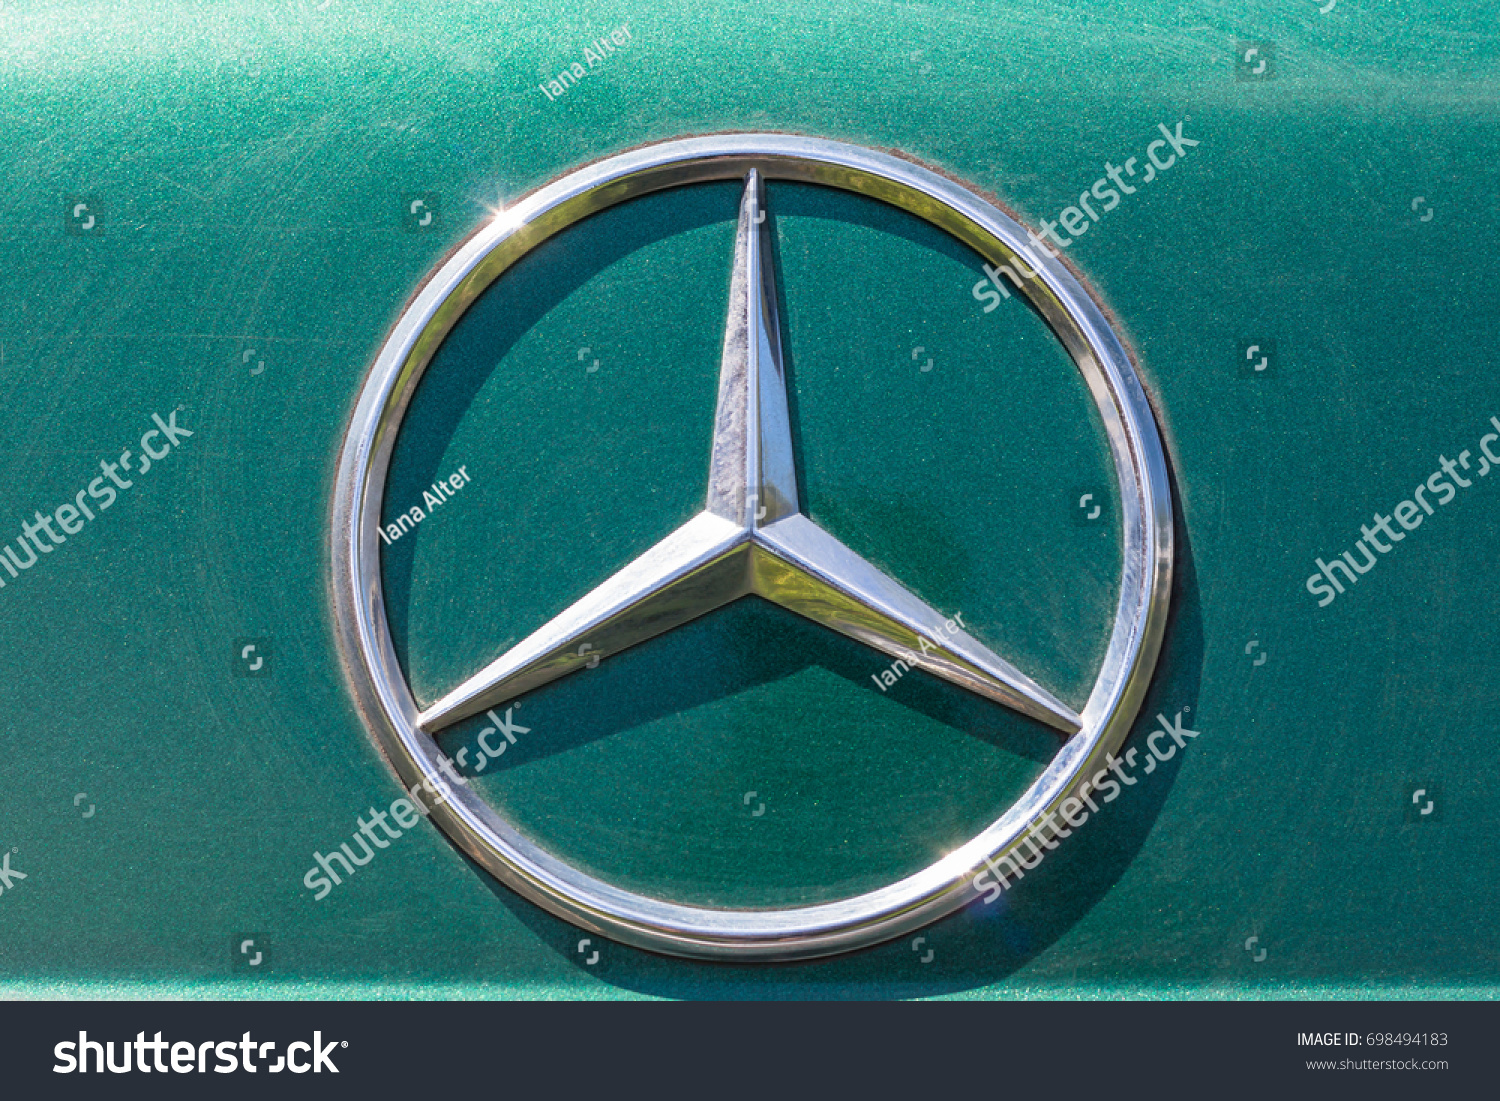 Ustkamenogorsk kazakhstan july 18 2017 close stock photo 698494183 ust kamenogorsk kazakhstan july 18 2017 close up image of mercedes biocorpaavc Image collections